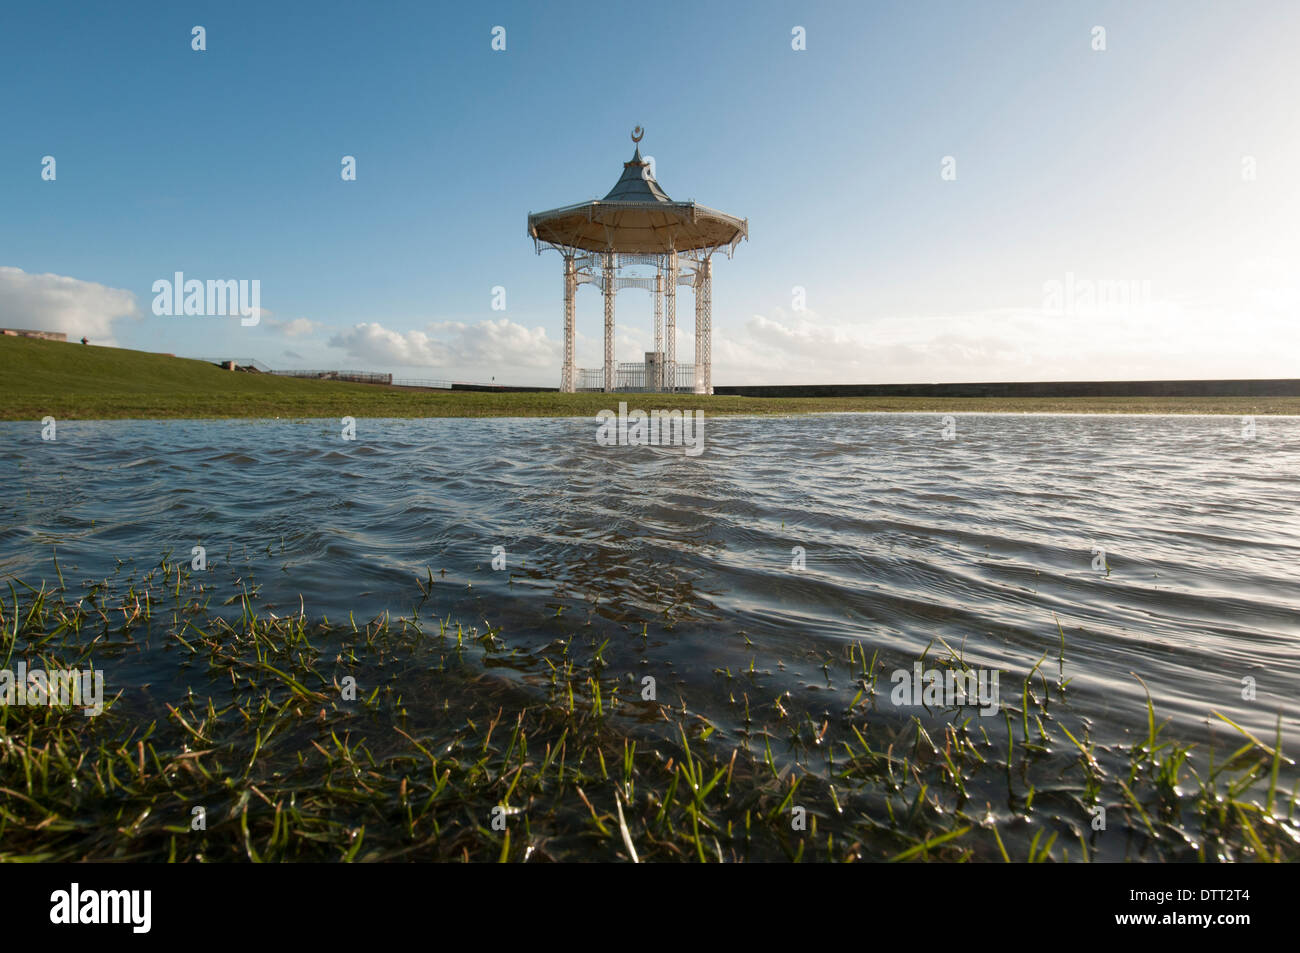 the bandstand at Southsea seafront nearly flooded with rain water after heavy winter storms Stock Photo